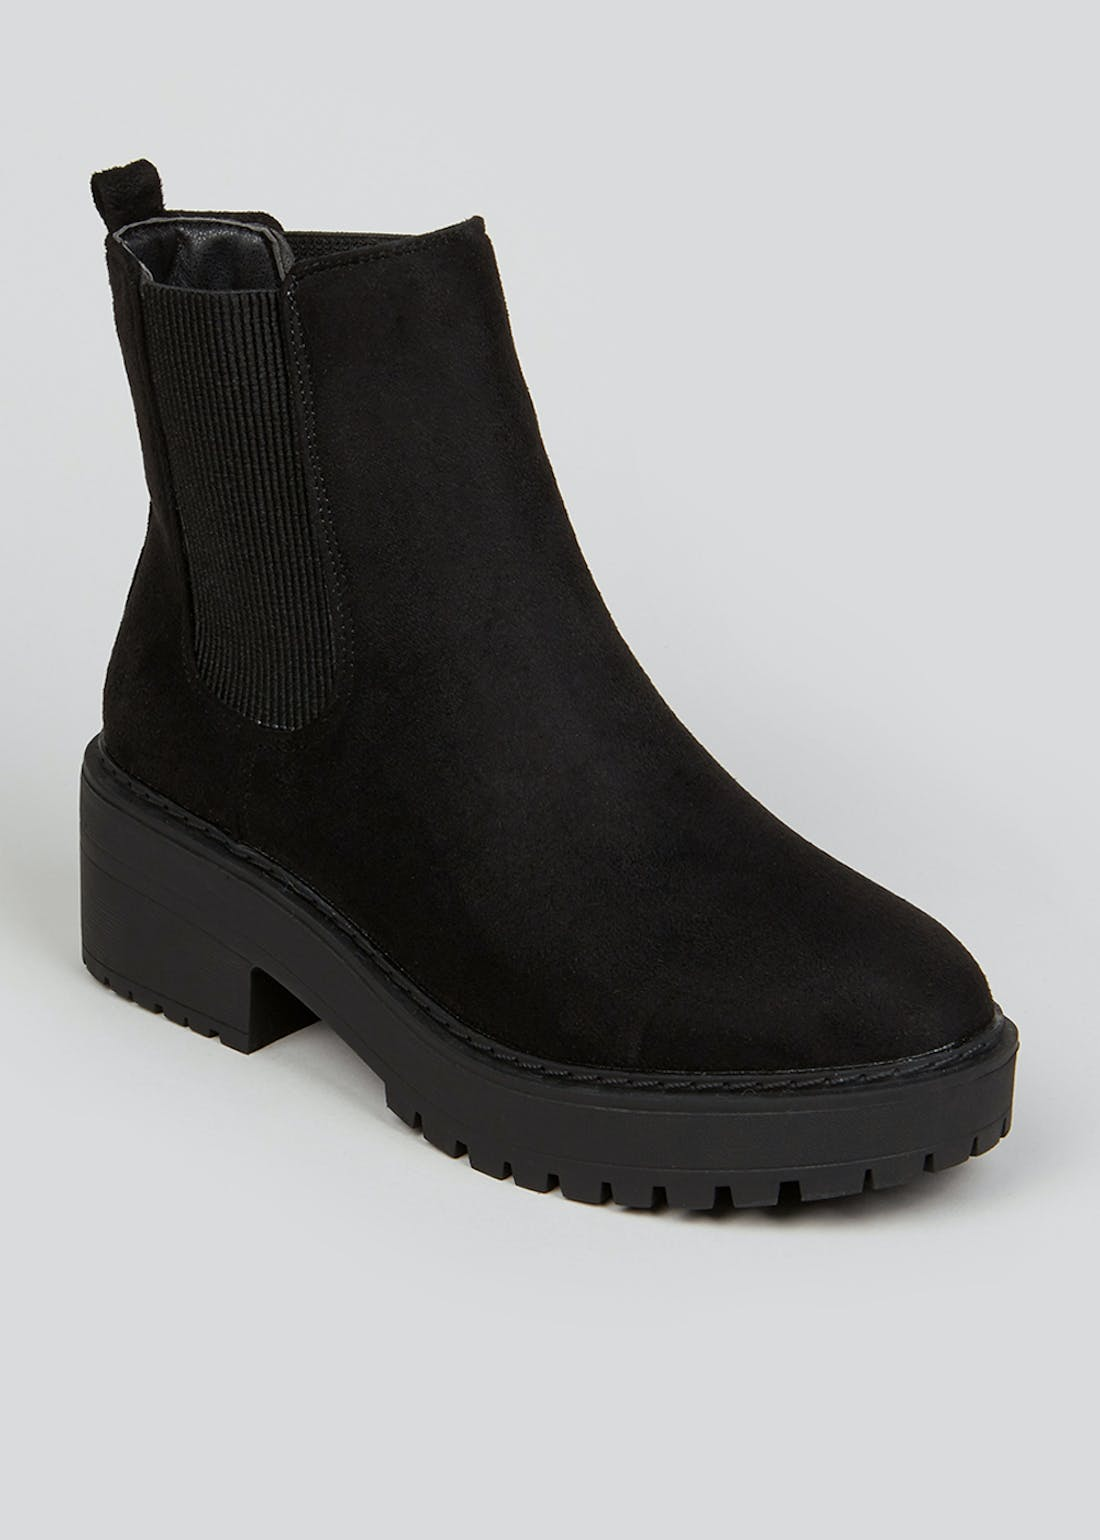 Black Chunky Chelsea Boots